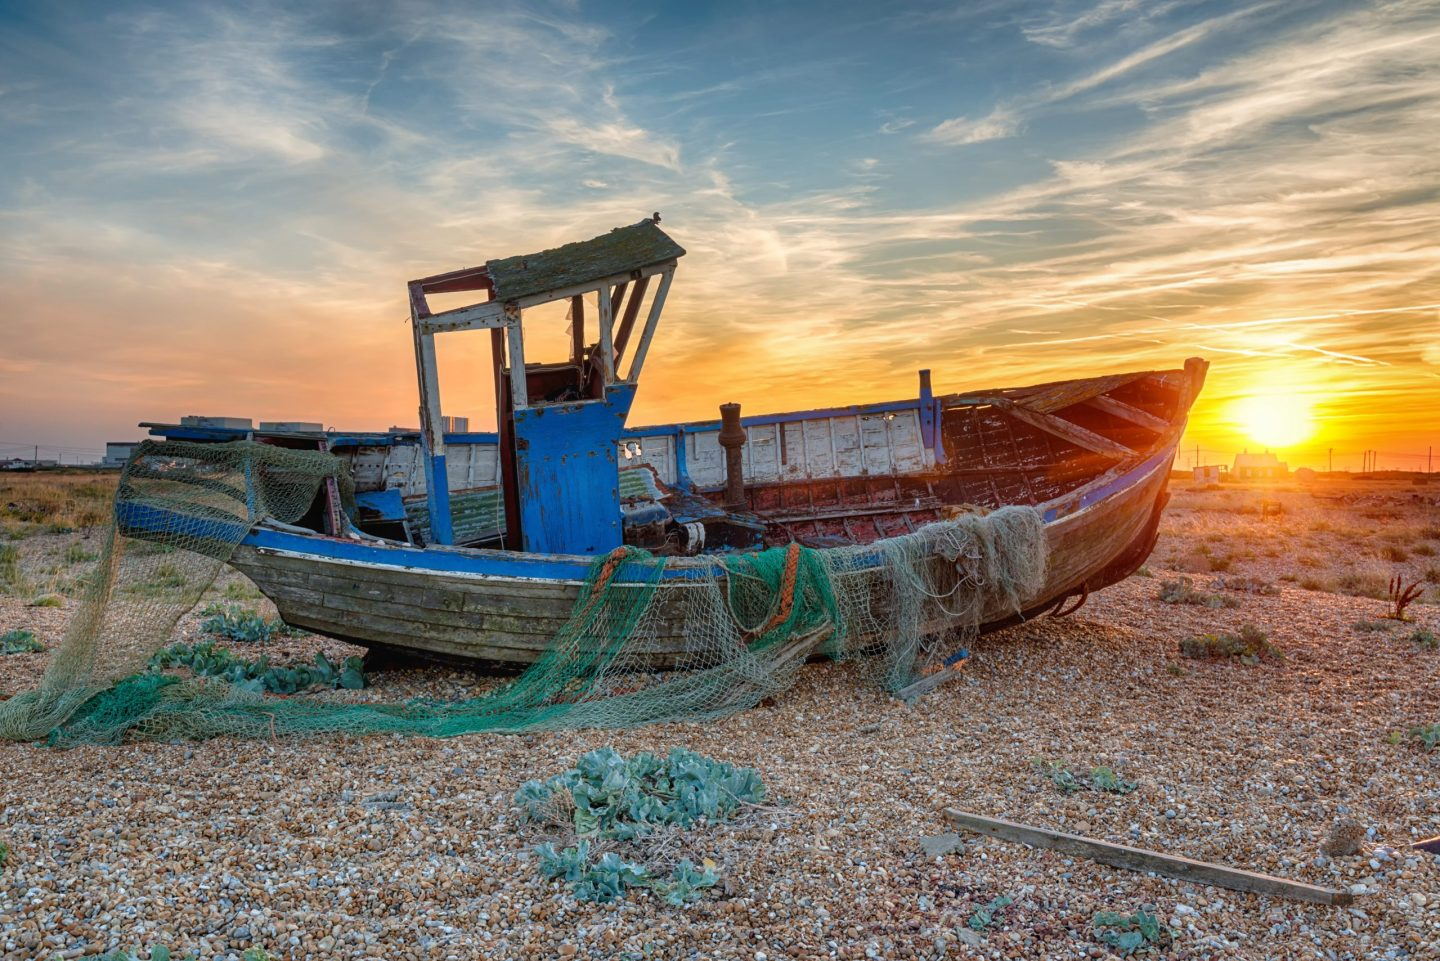 sunset in Dungeness